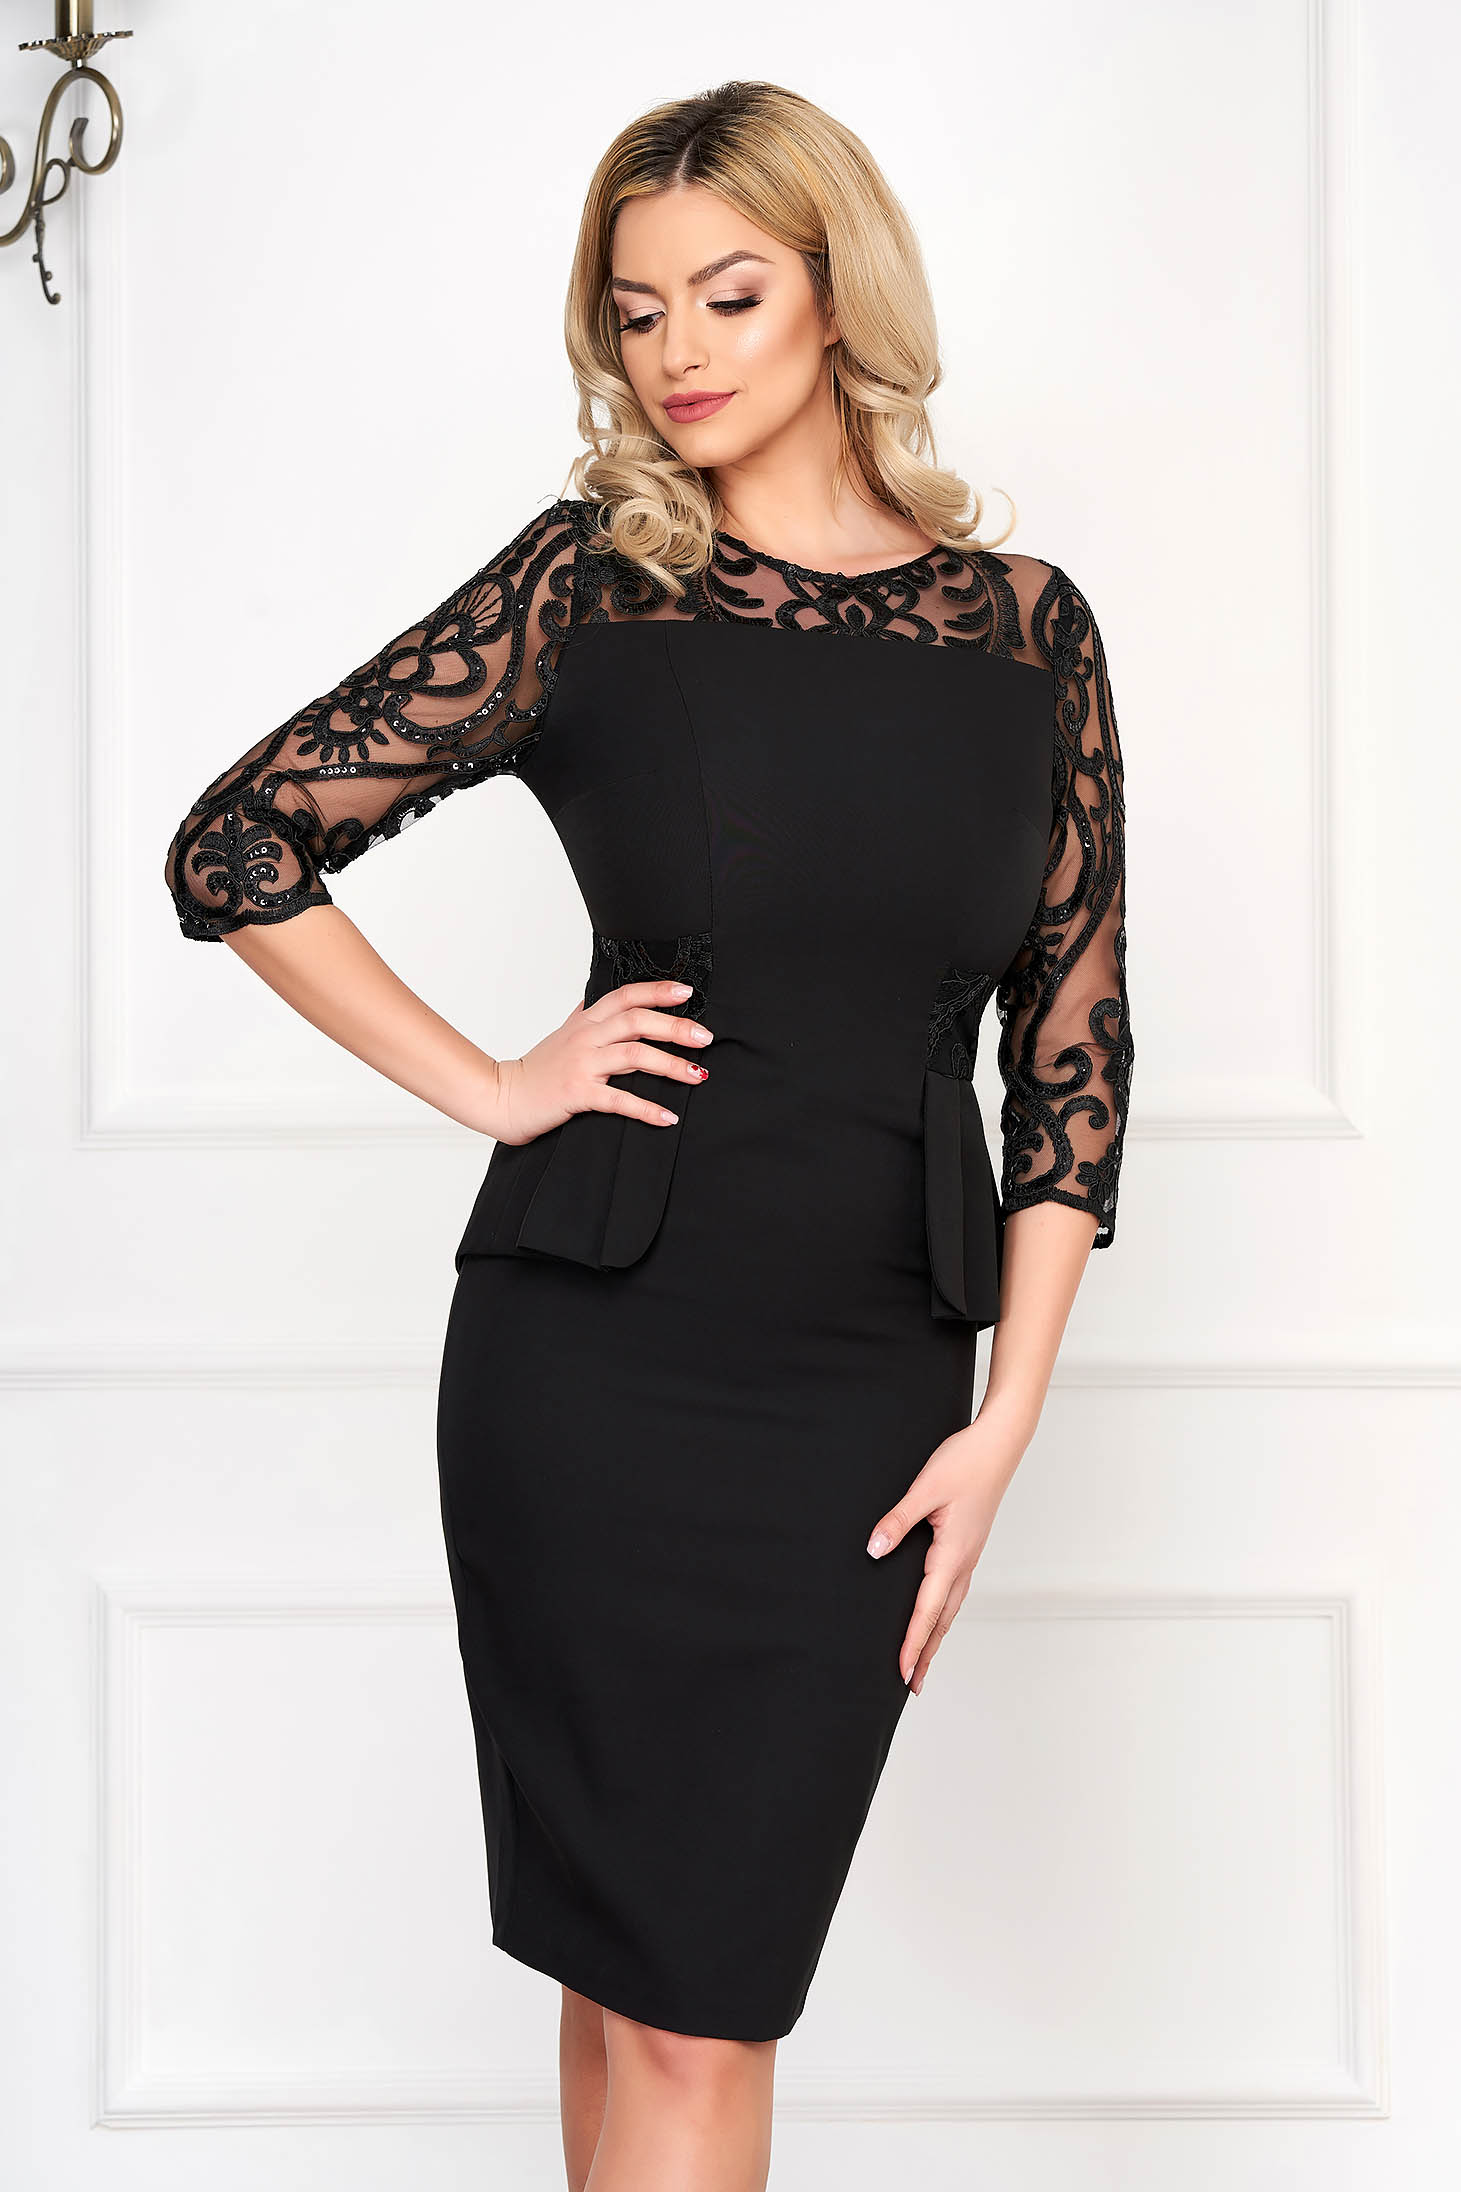 Black dress occasional midi pencil with sequin embellished details with laced sleeves cloth